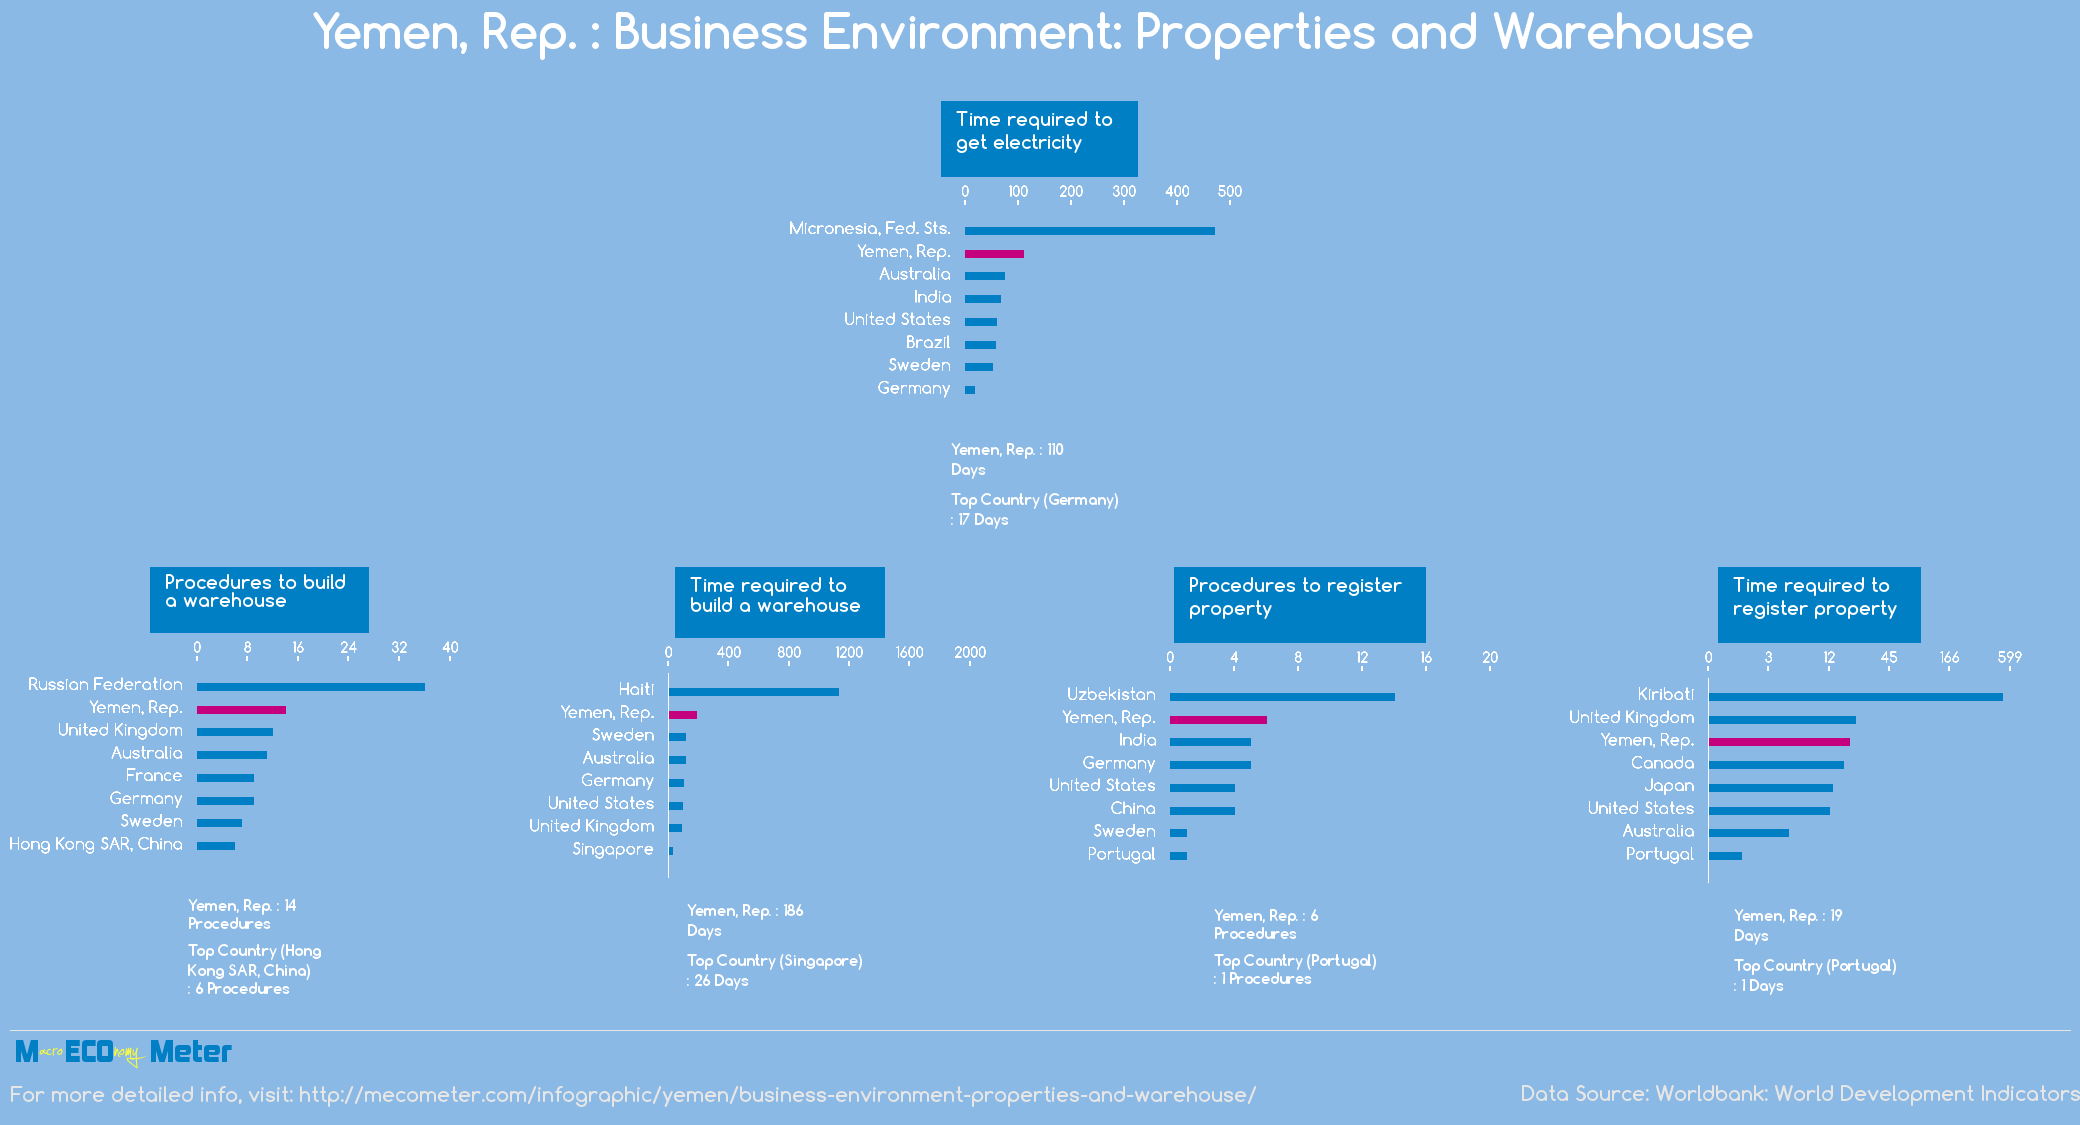 Yemen, Rep. : Business Environment: Properties and Warehouse